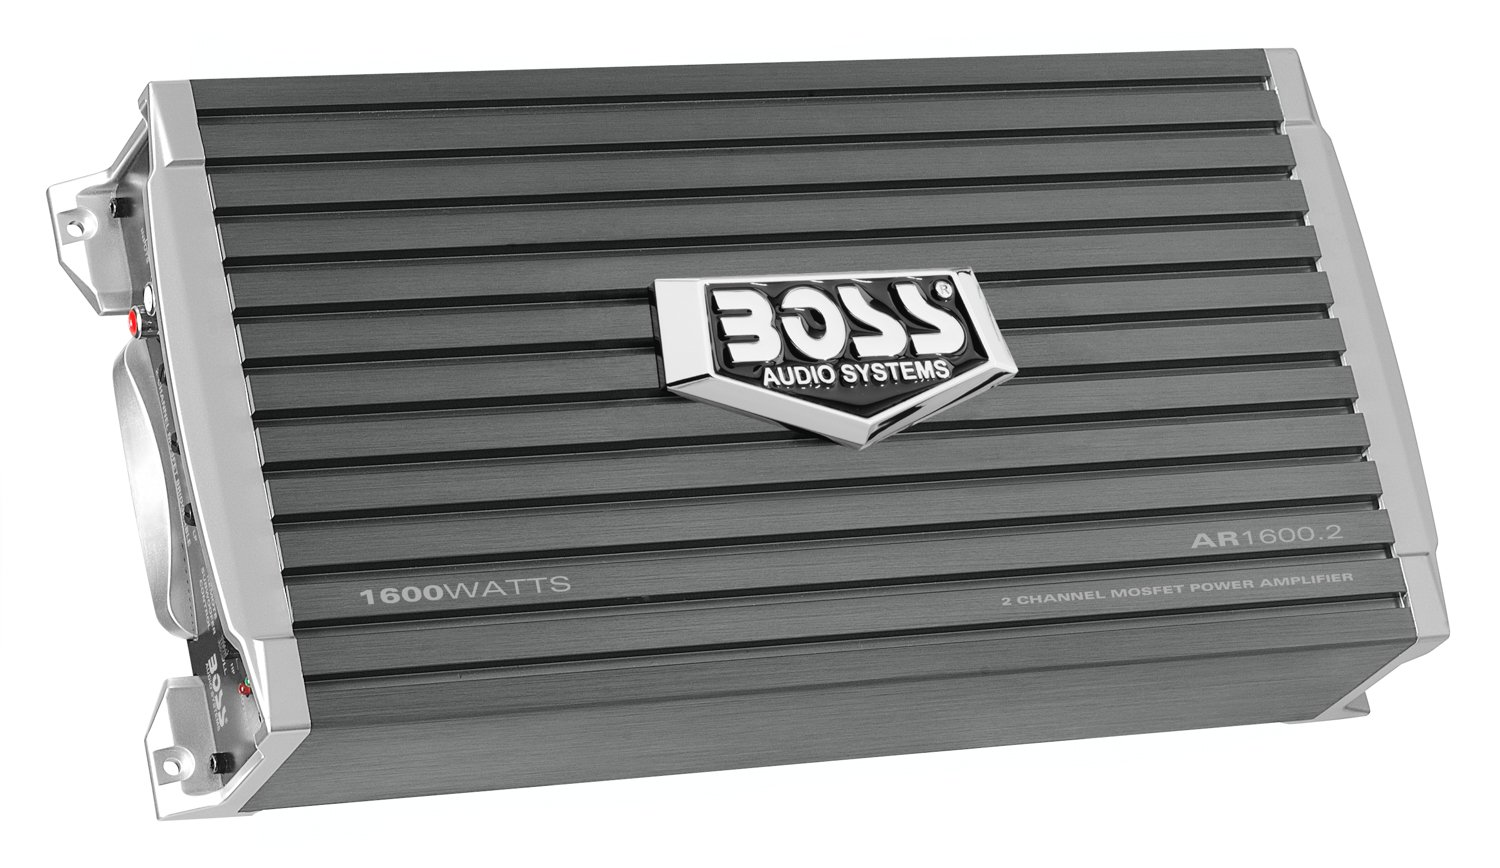 BOSS Audio Systems AR1600.2 2 Channel Car Amplifier - 1600 Watts, Full Range, Class AB, 2-4 Ohm Stable, Mosfet Power Supply, Bridgeable